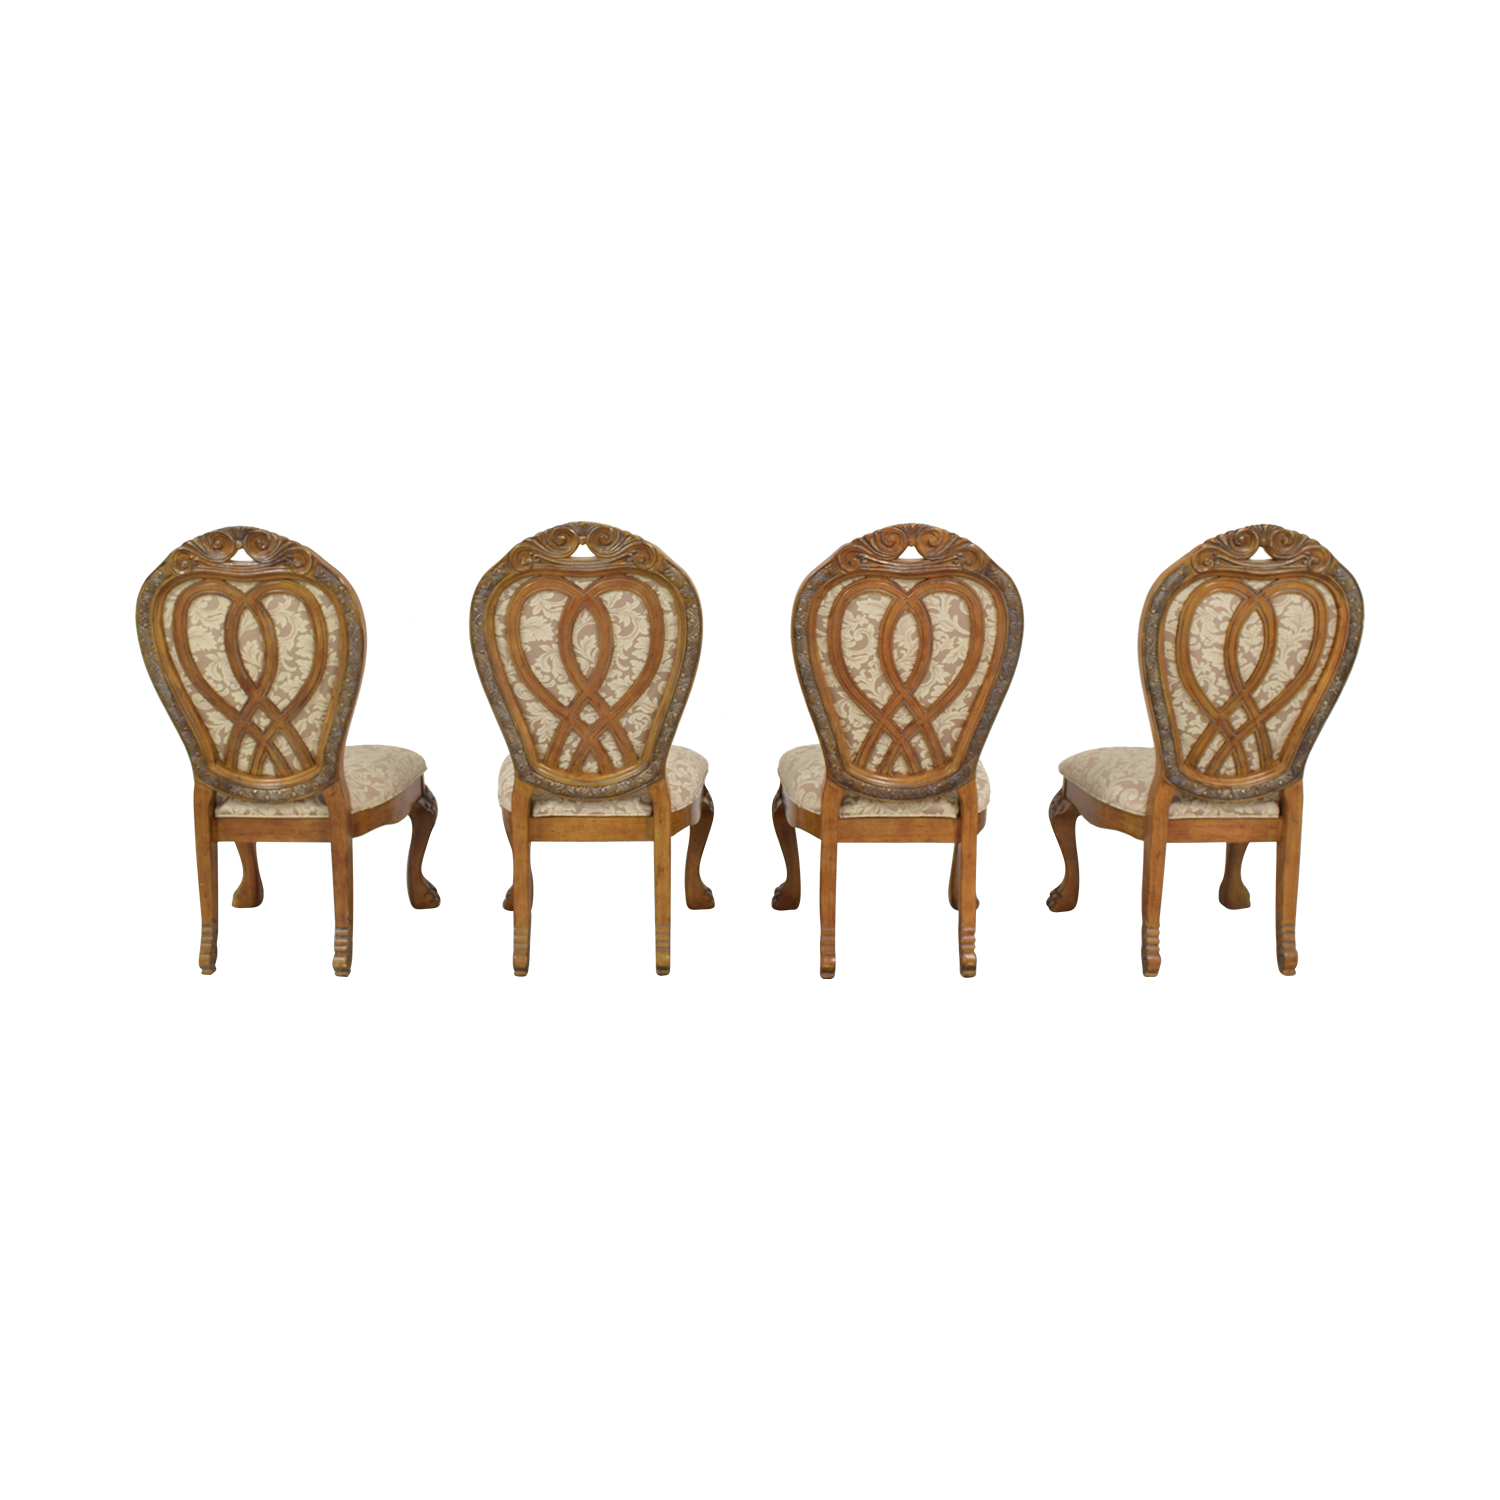 Michael Amini Michael Amini Upholstered Dining Chairs